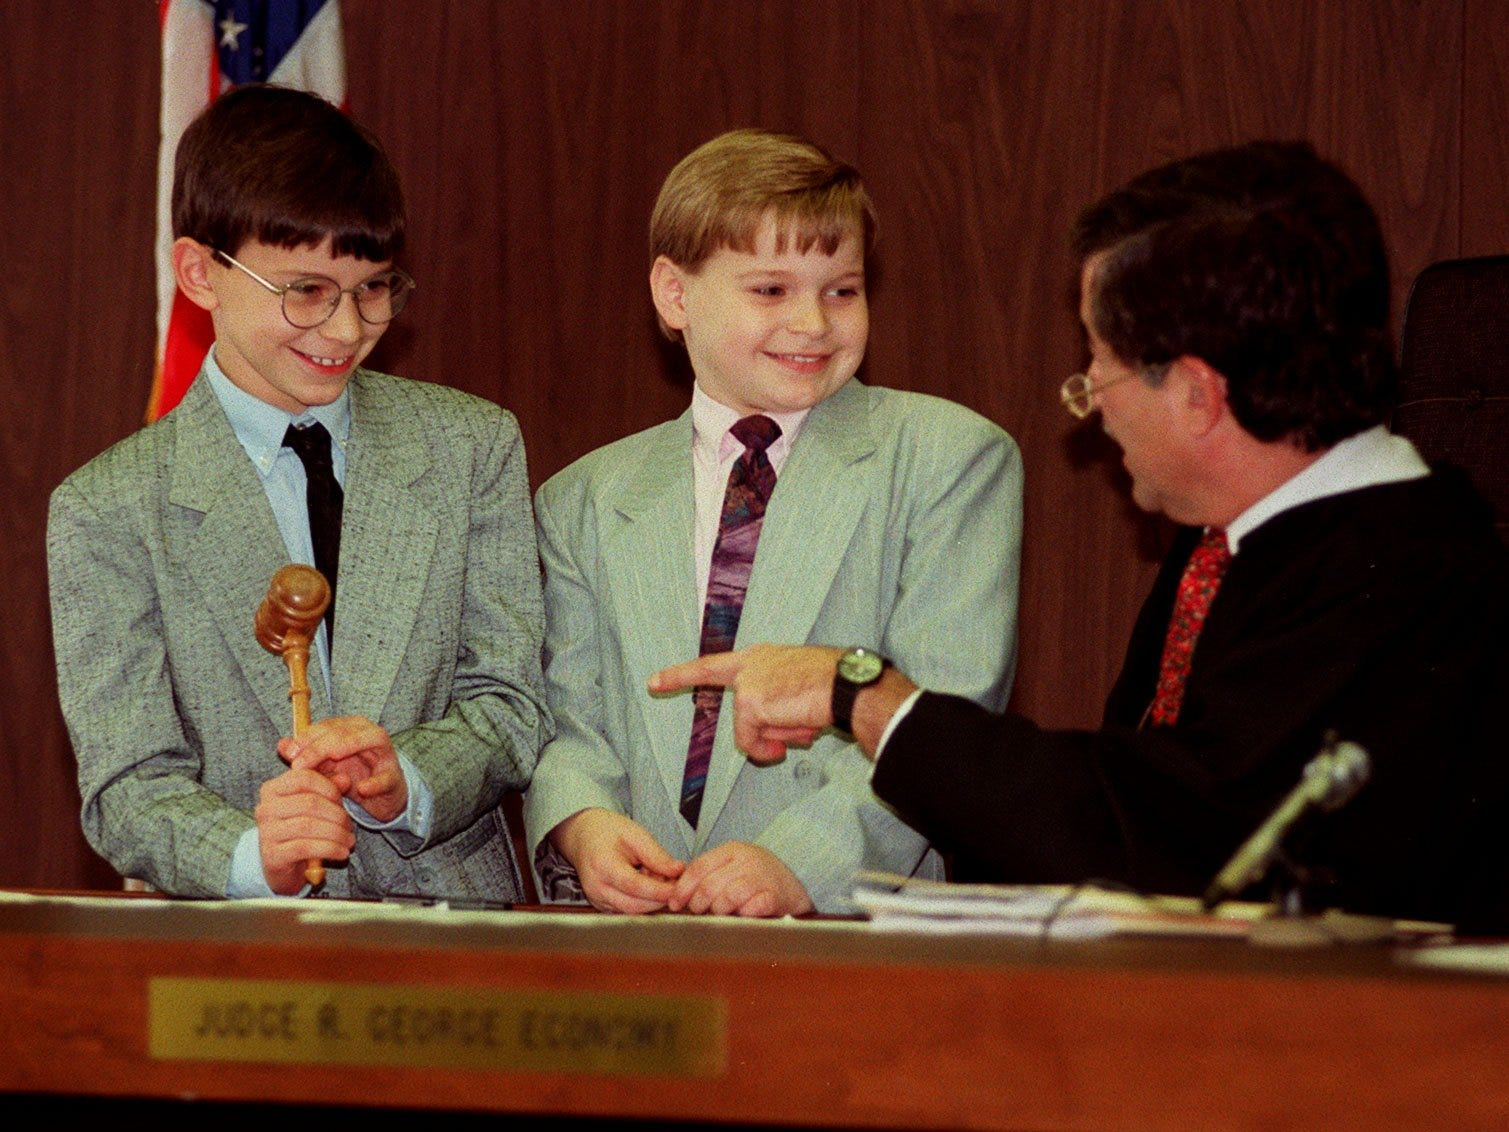 Brothers Joseph Lewis, 9, left, and Anthony Lewis, 8, of Lansing speak with Ingham County Probate Court Judge R. George Economy during their adoption hearing, Dec. 22, 1995. Each boy used the Judge's gavel to officially signify the other's adoption.